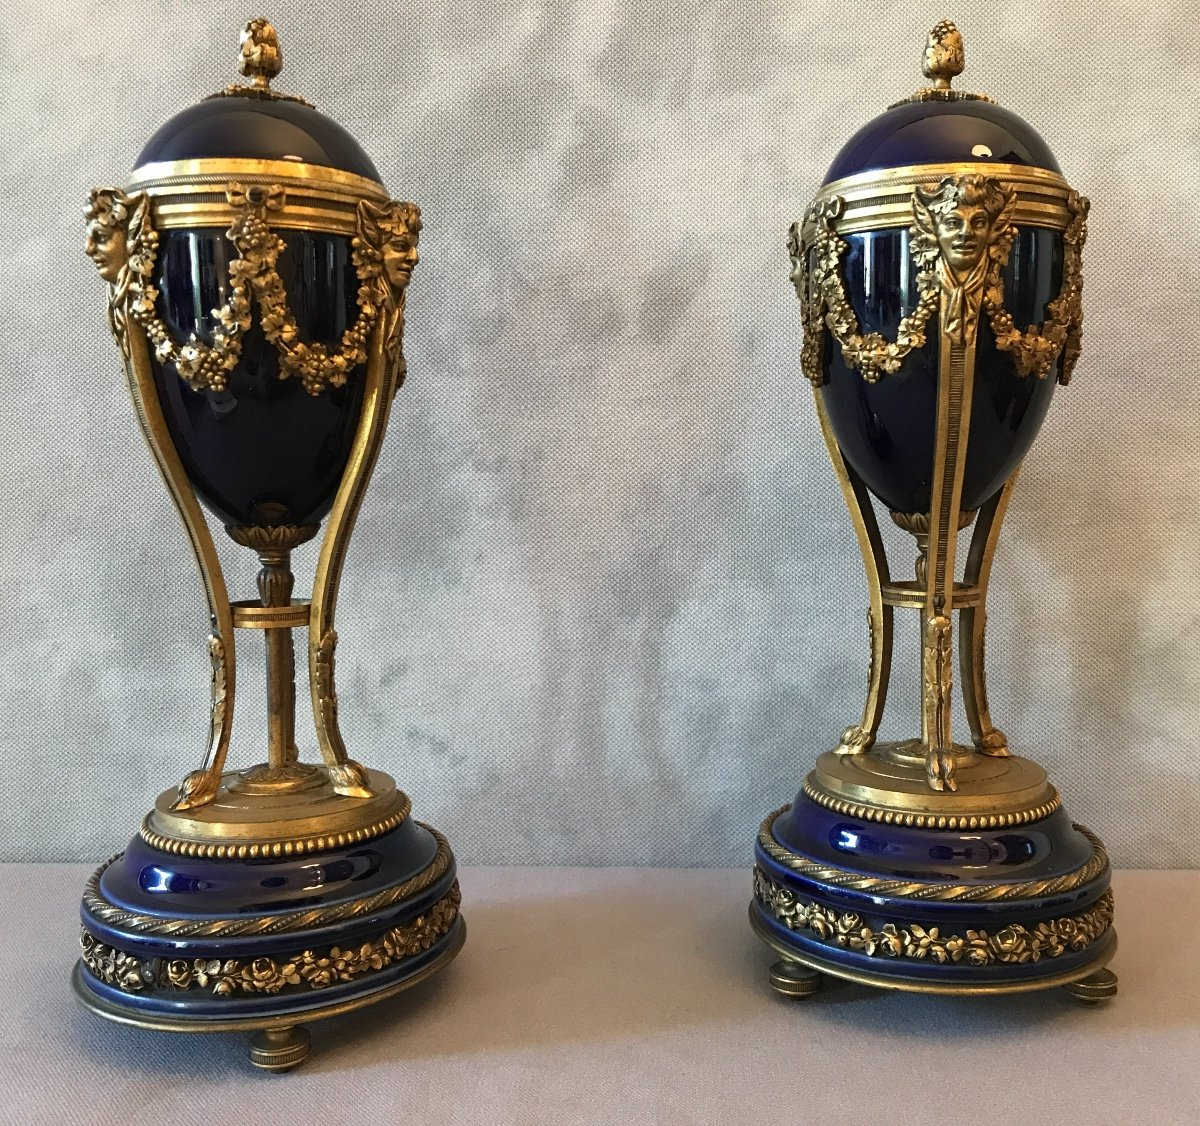 Pair Of Cassolettes Forming Candlesticks In Bronze And Blue Porcelain From The 19th Century